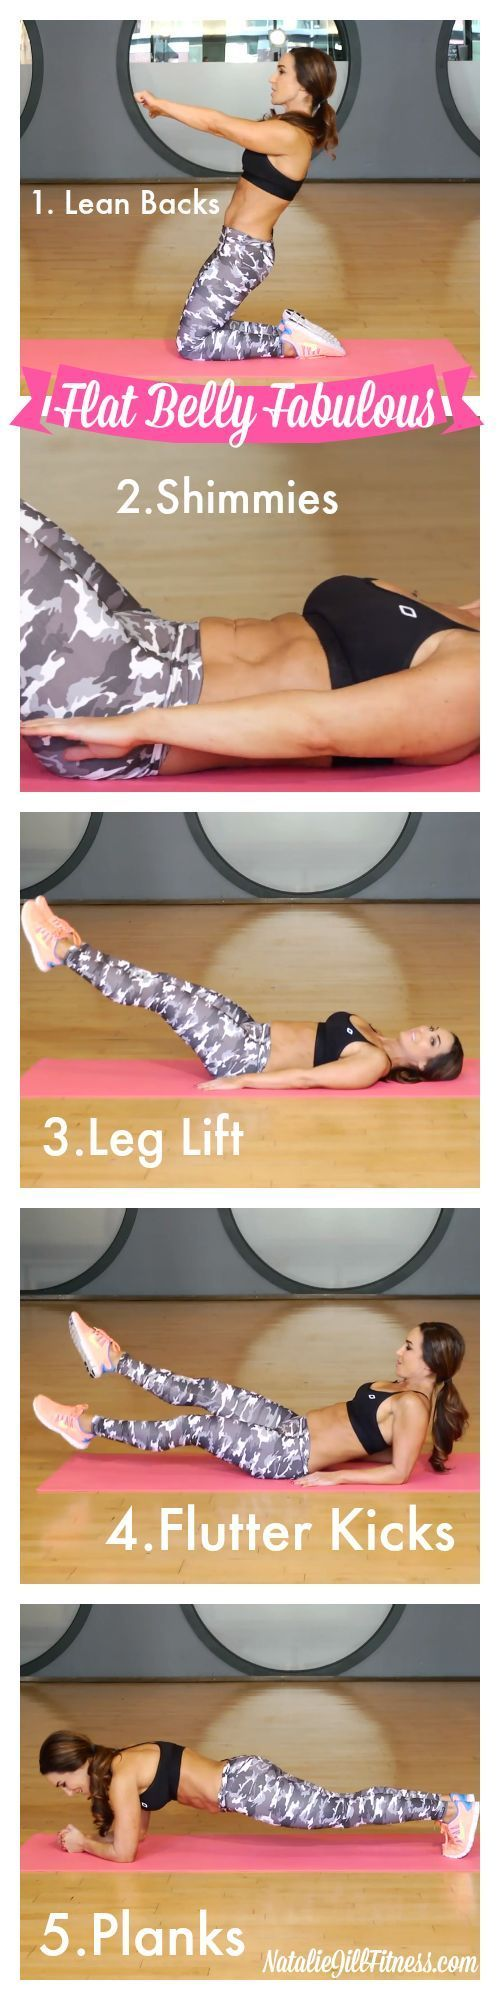 Fitness, Fit, Fitness Motivation, Fitness Quotes, Fitspiration, Fitness Inspiration! :) @pborrego7 these are killer!!!: